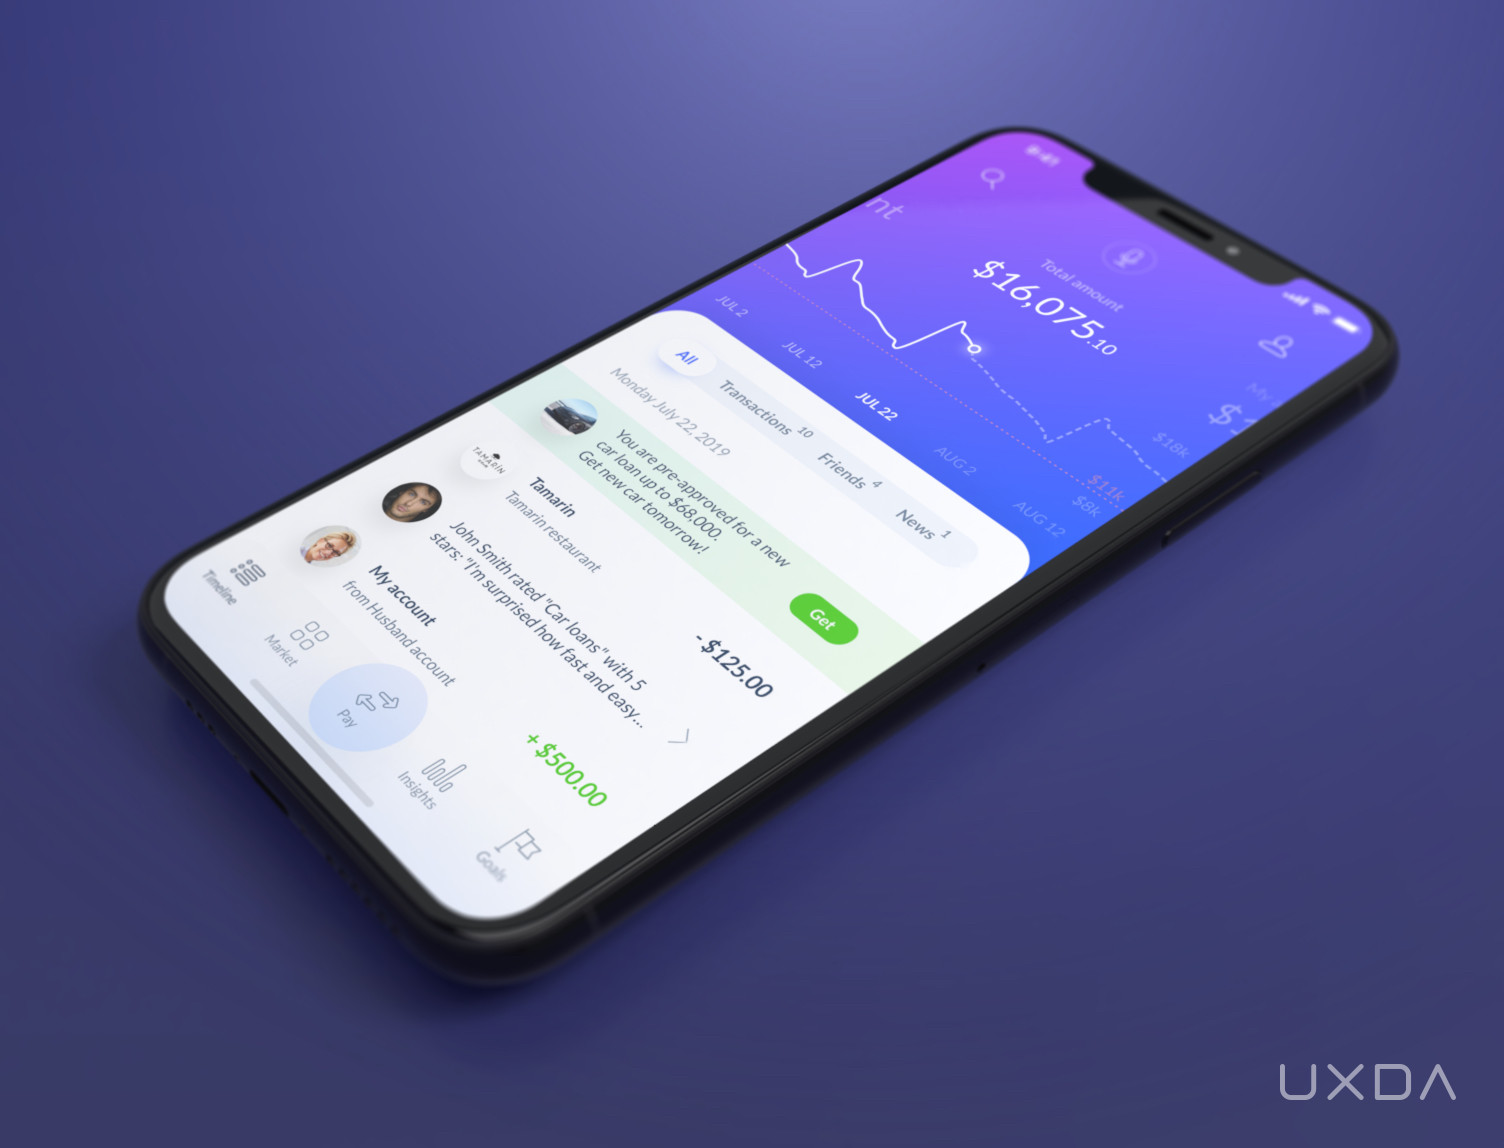 ux-case-study-how-to-create-a-mobile-banking-super-app-s-6.jpg